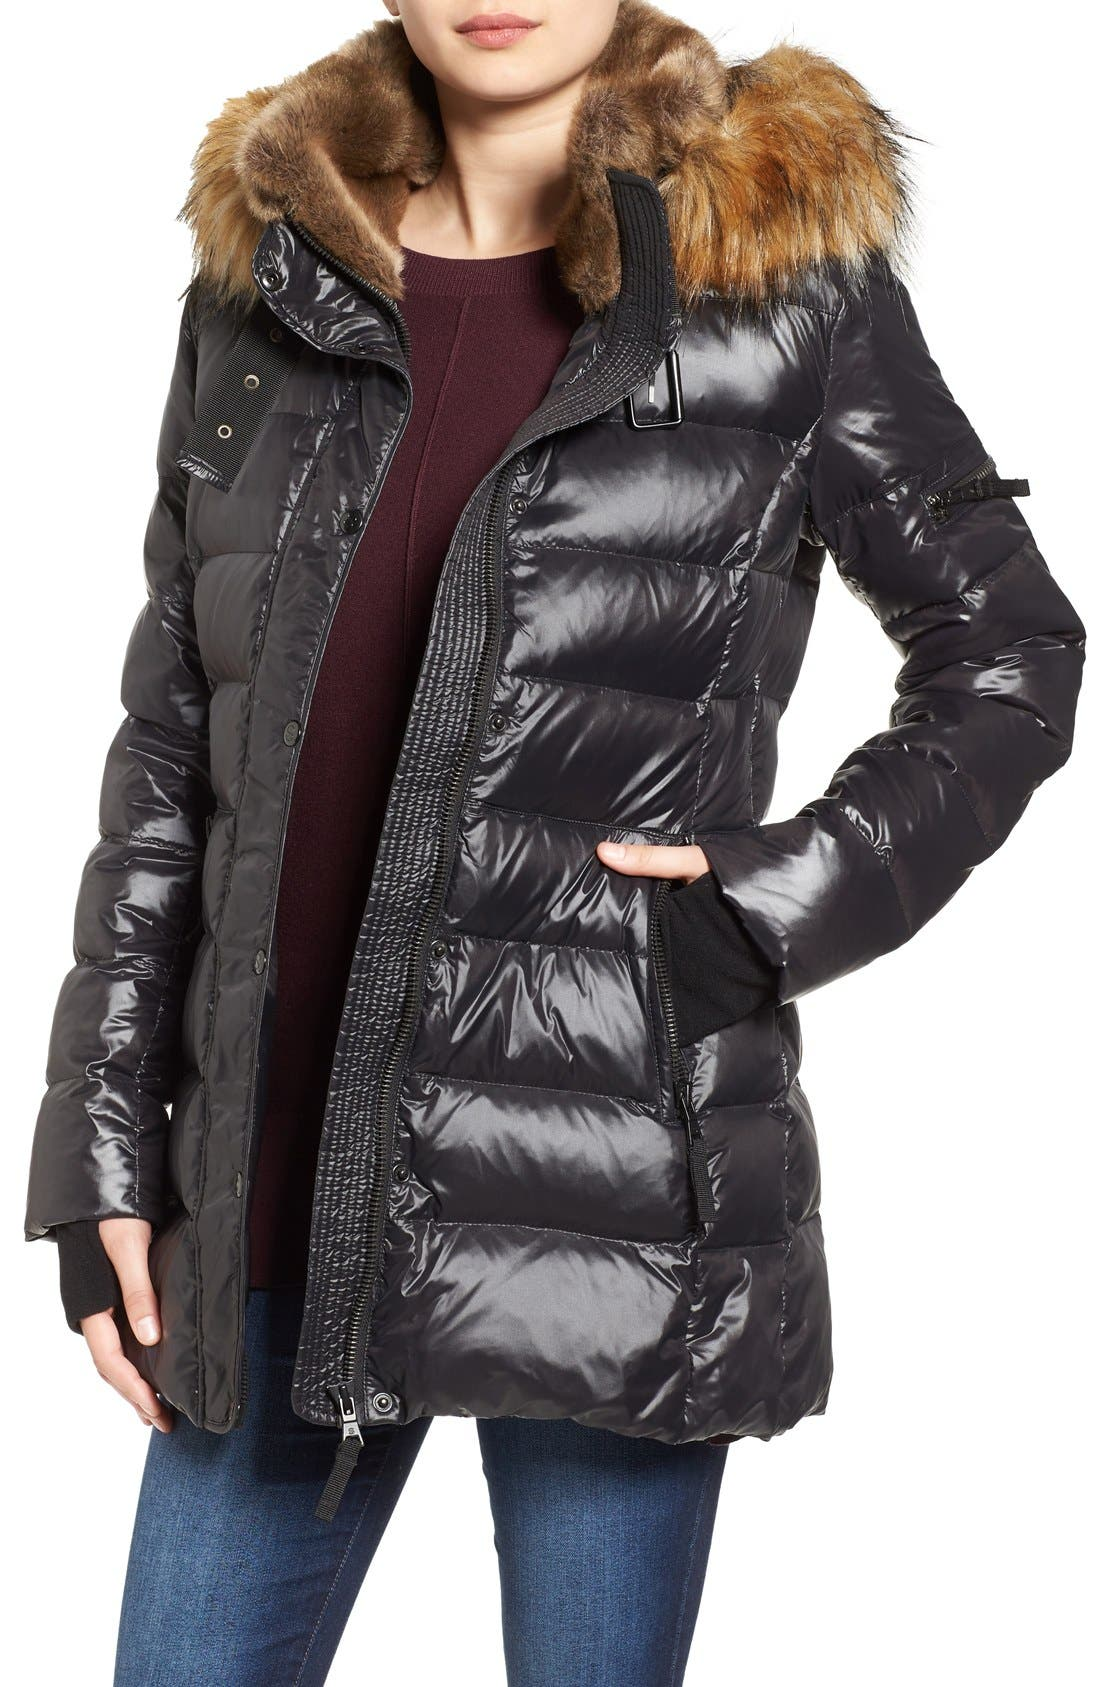 Alternate Image 1 Selected - 'Chelsea' Gloss Down Jacket with Removable Hood and Faux Fur Trim